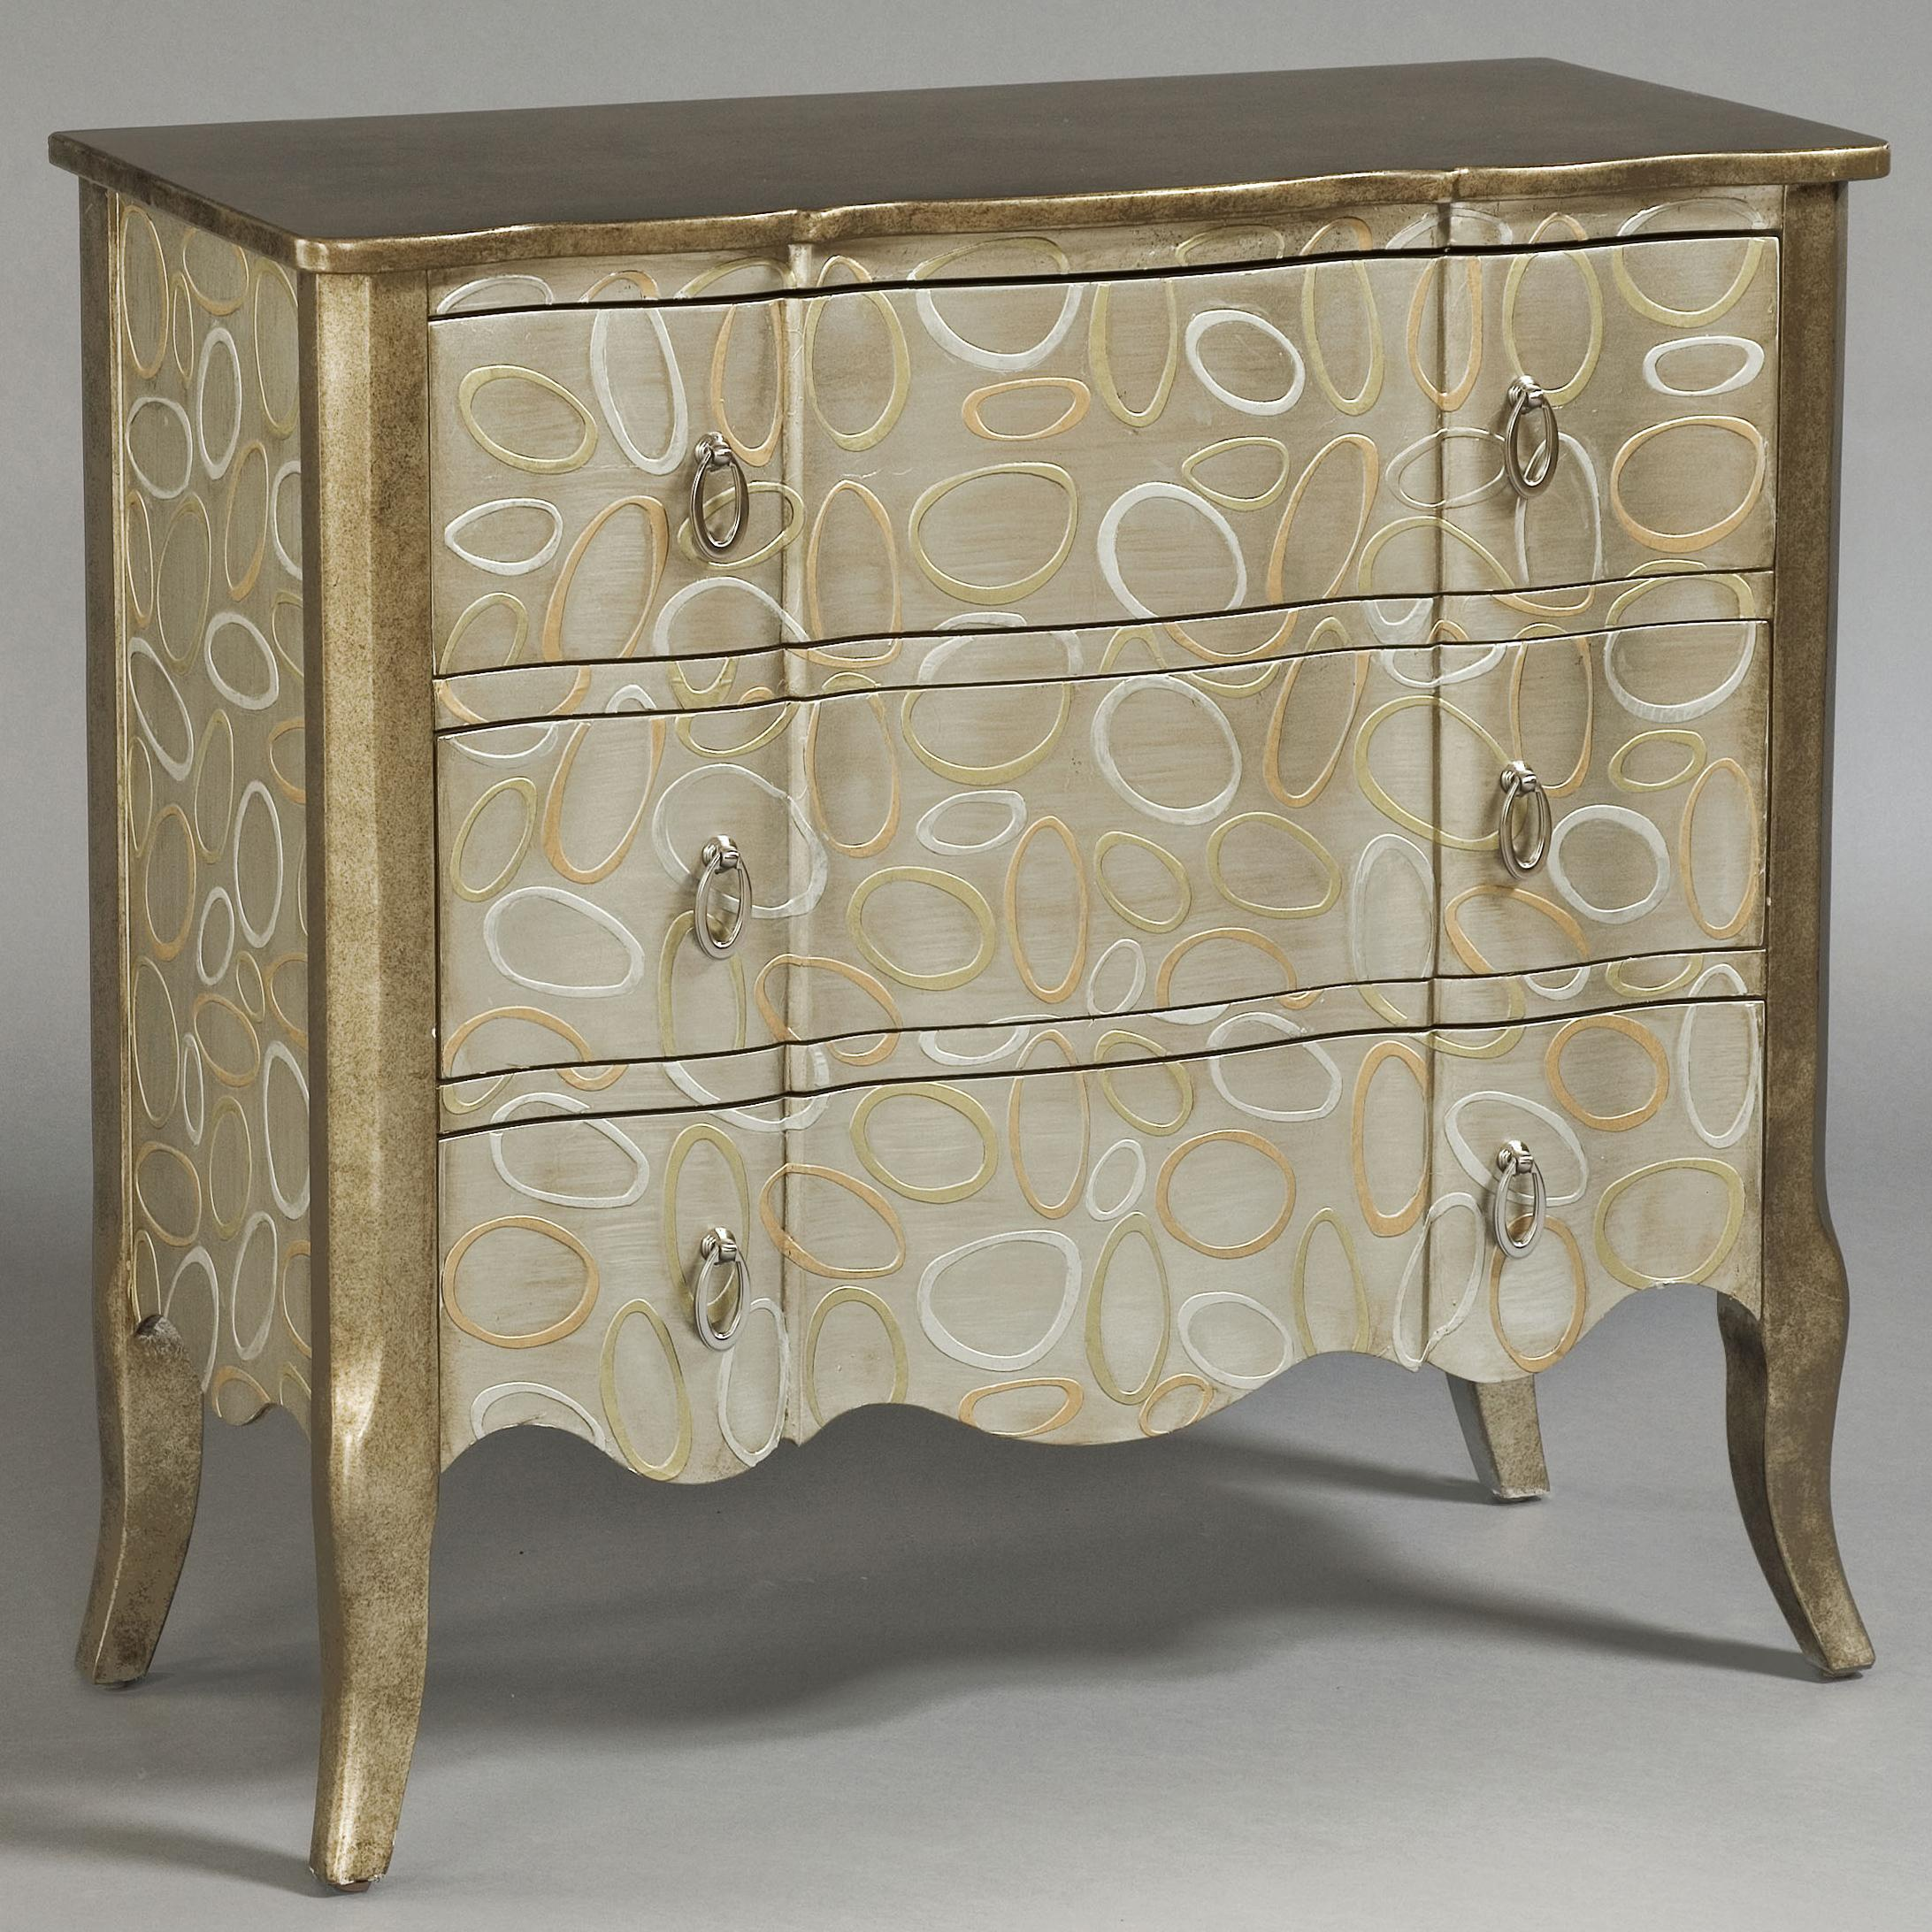 Accents Accent Chest With Patterned Finish By Pulaski Furniture